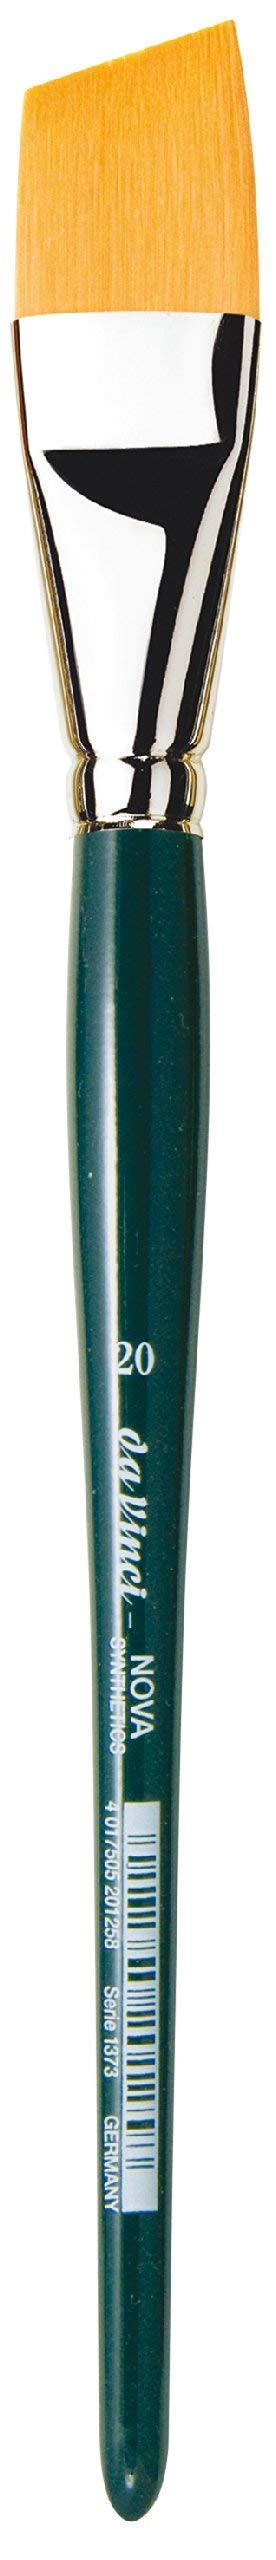 da Vinci Nova Series 1373 Paint Brush, Slanting Edge Synthetic, Size 20 (1373-20)